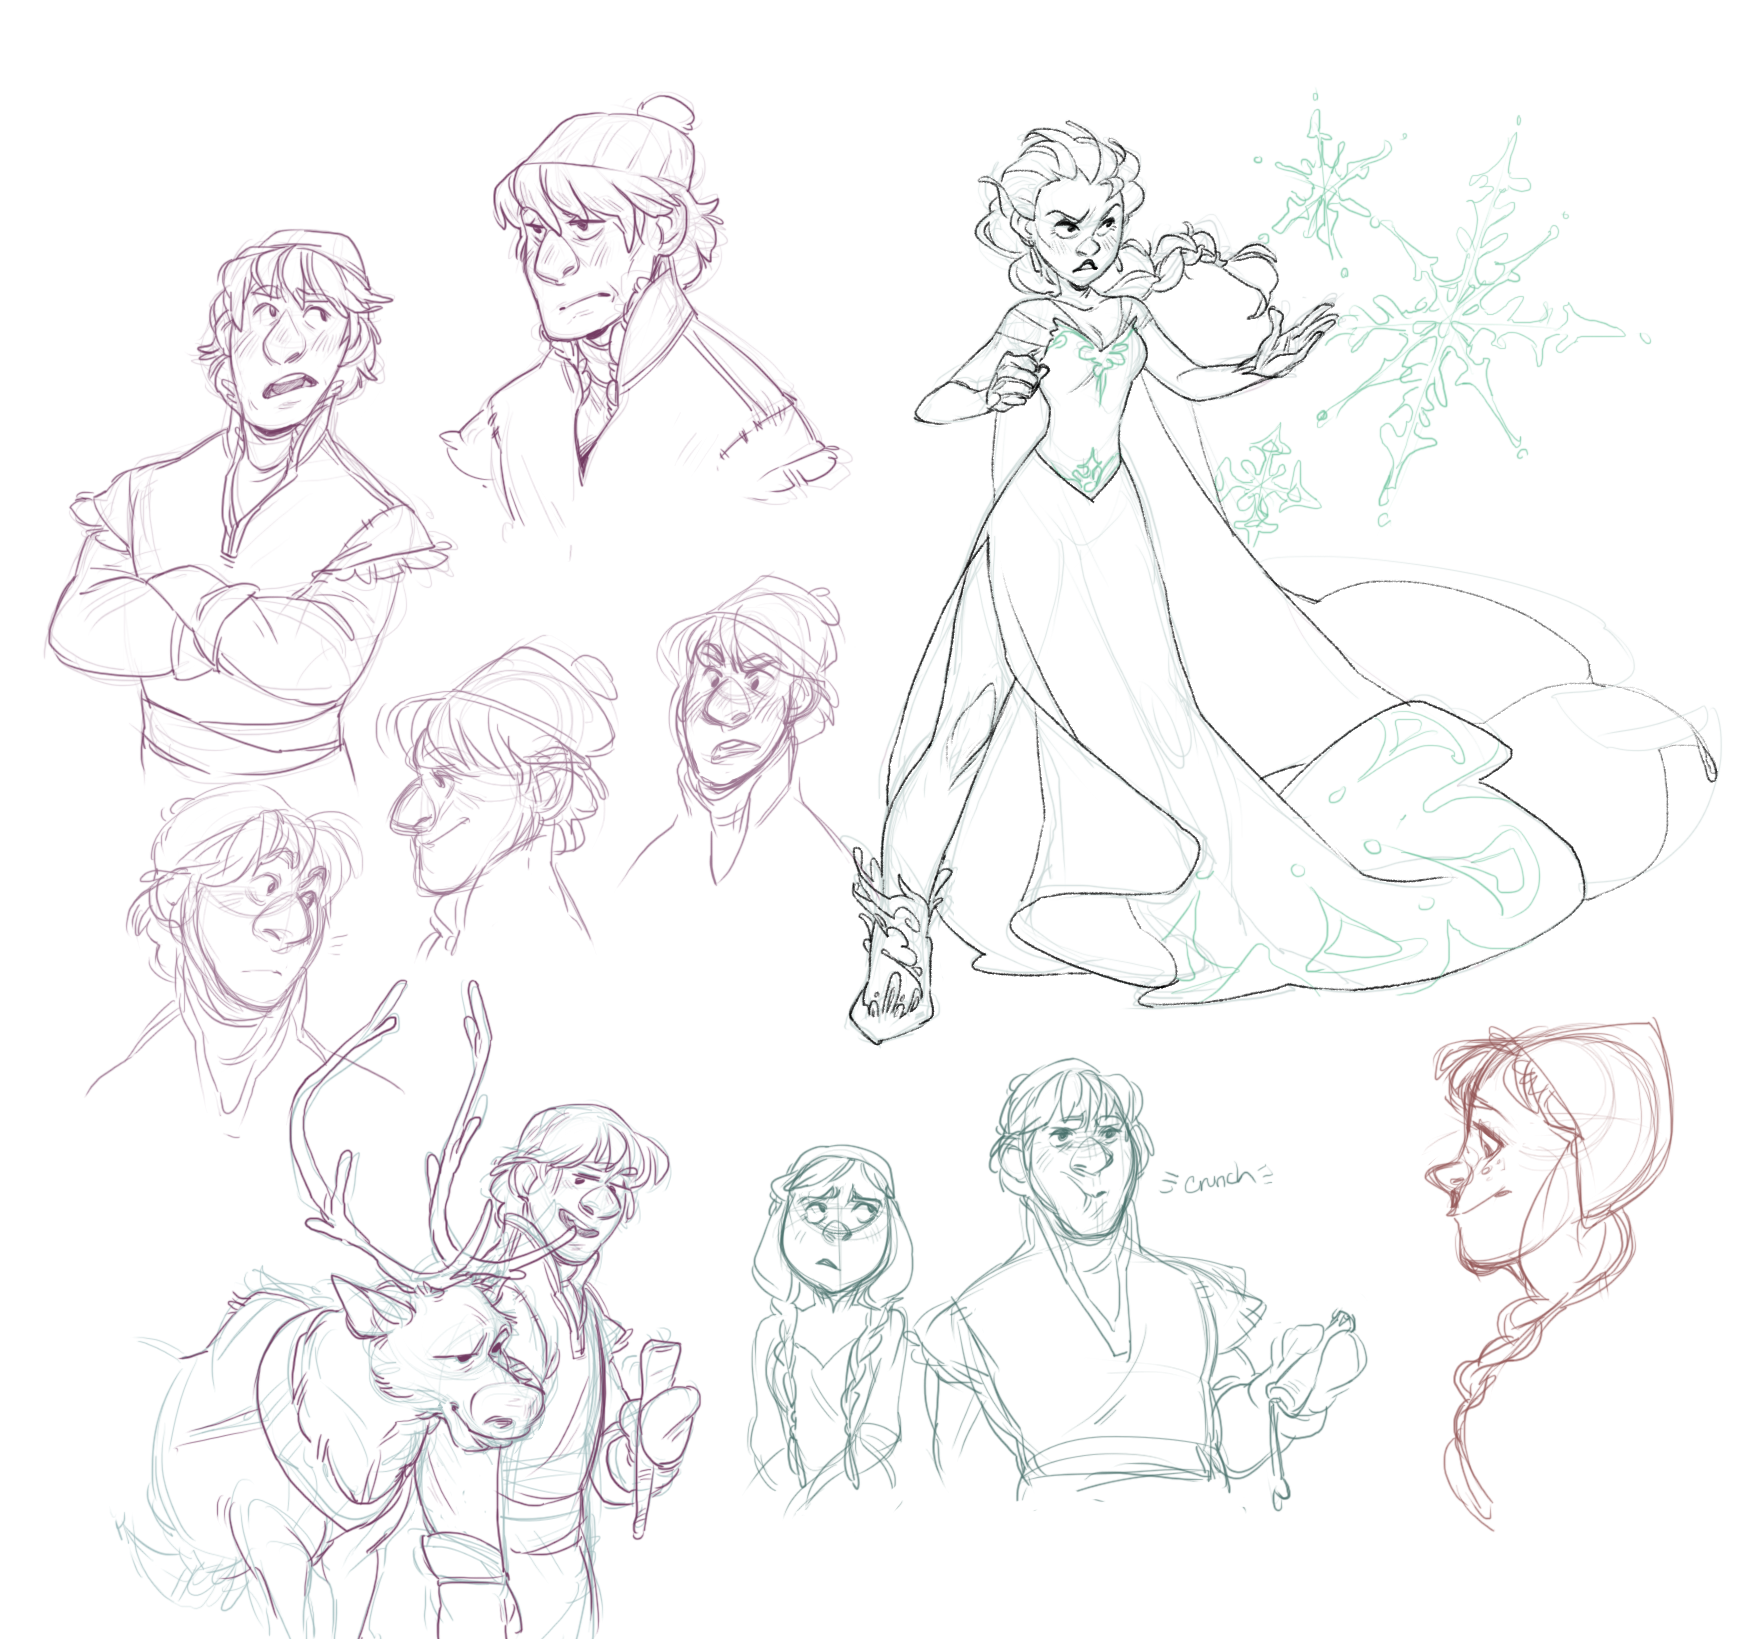 Frozen Drawing Tumblr Frozen doodles by agentdax